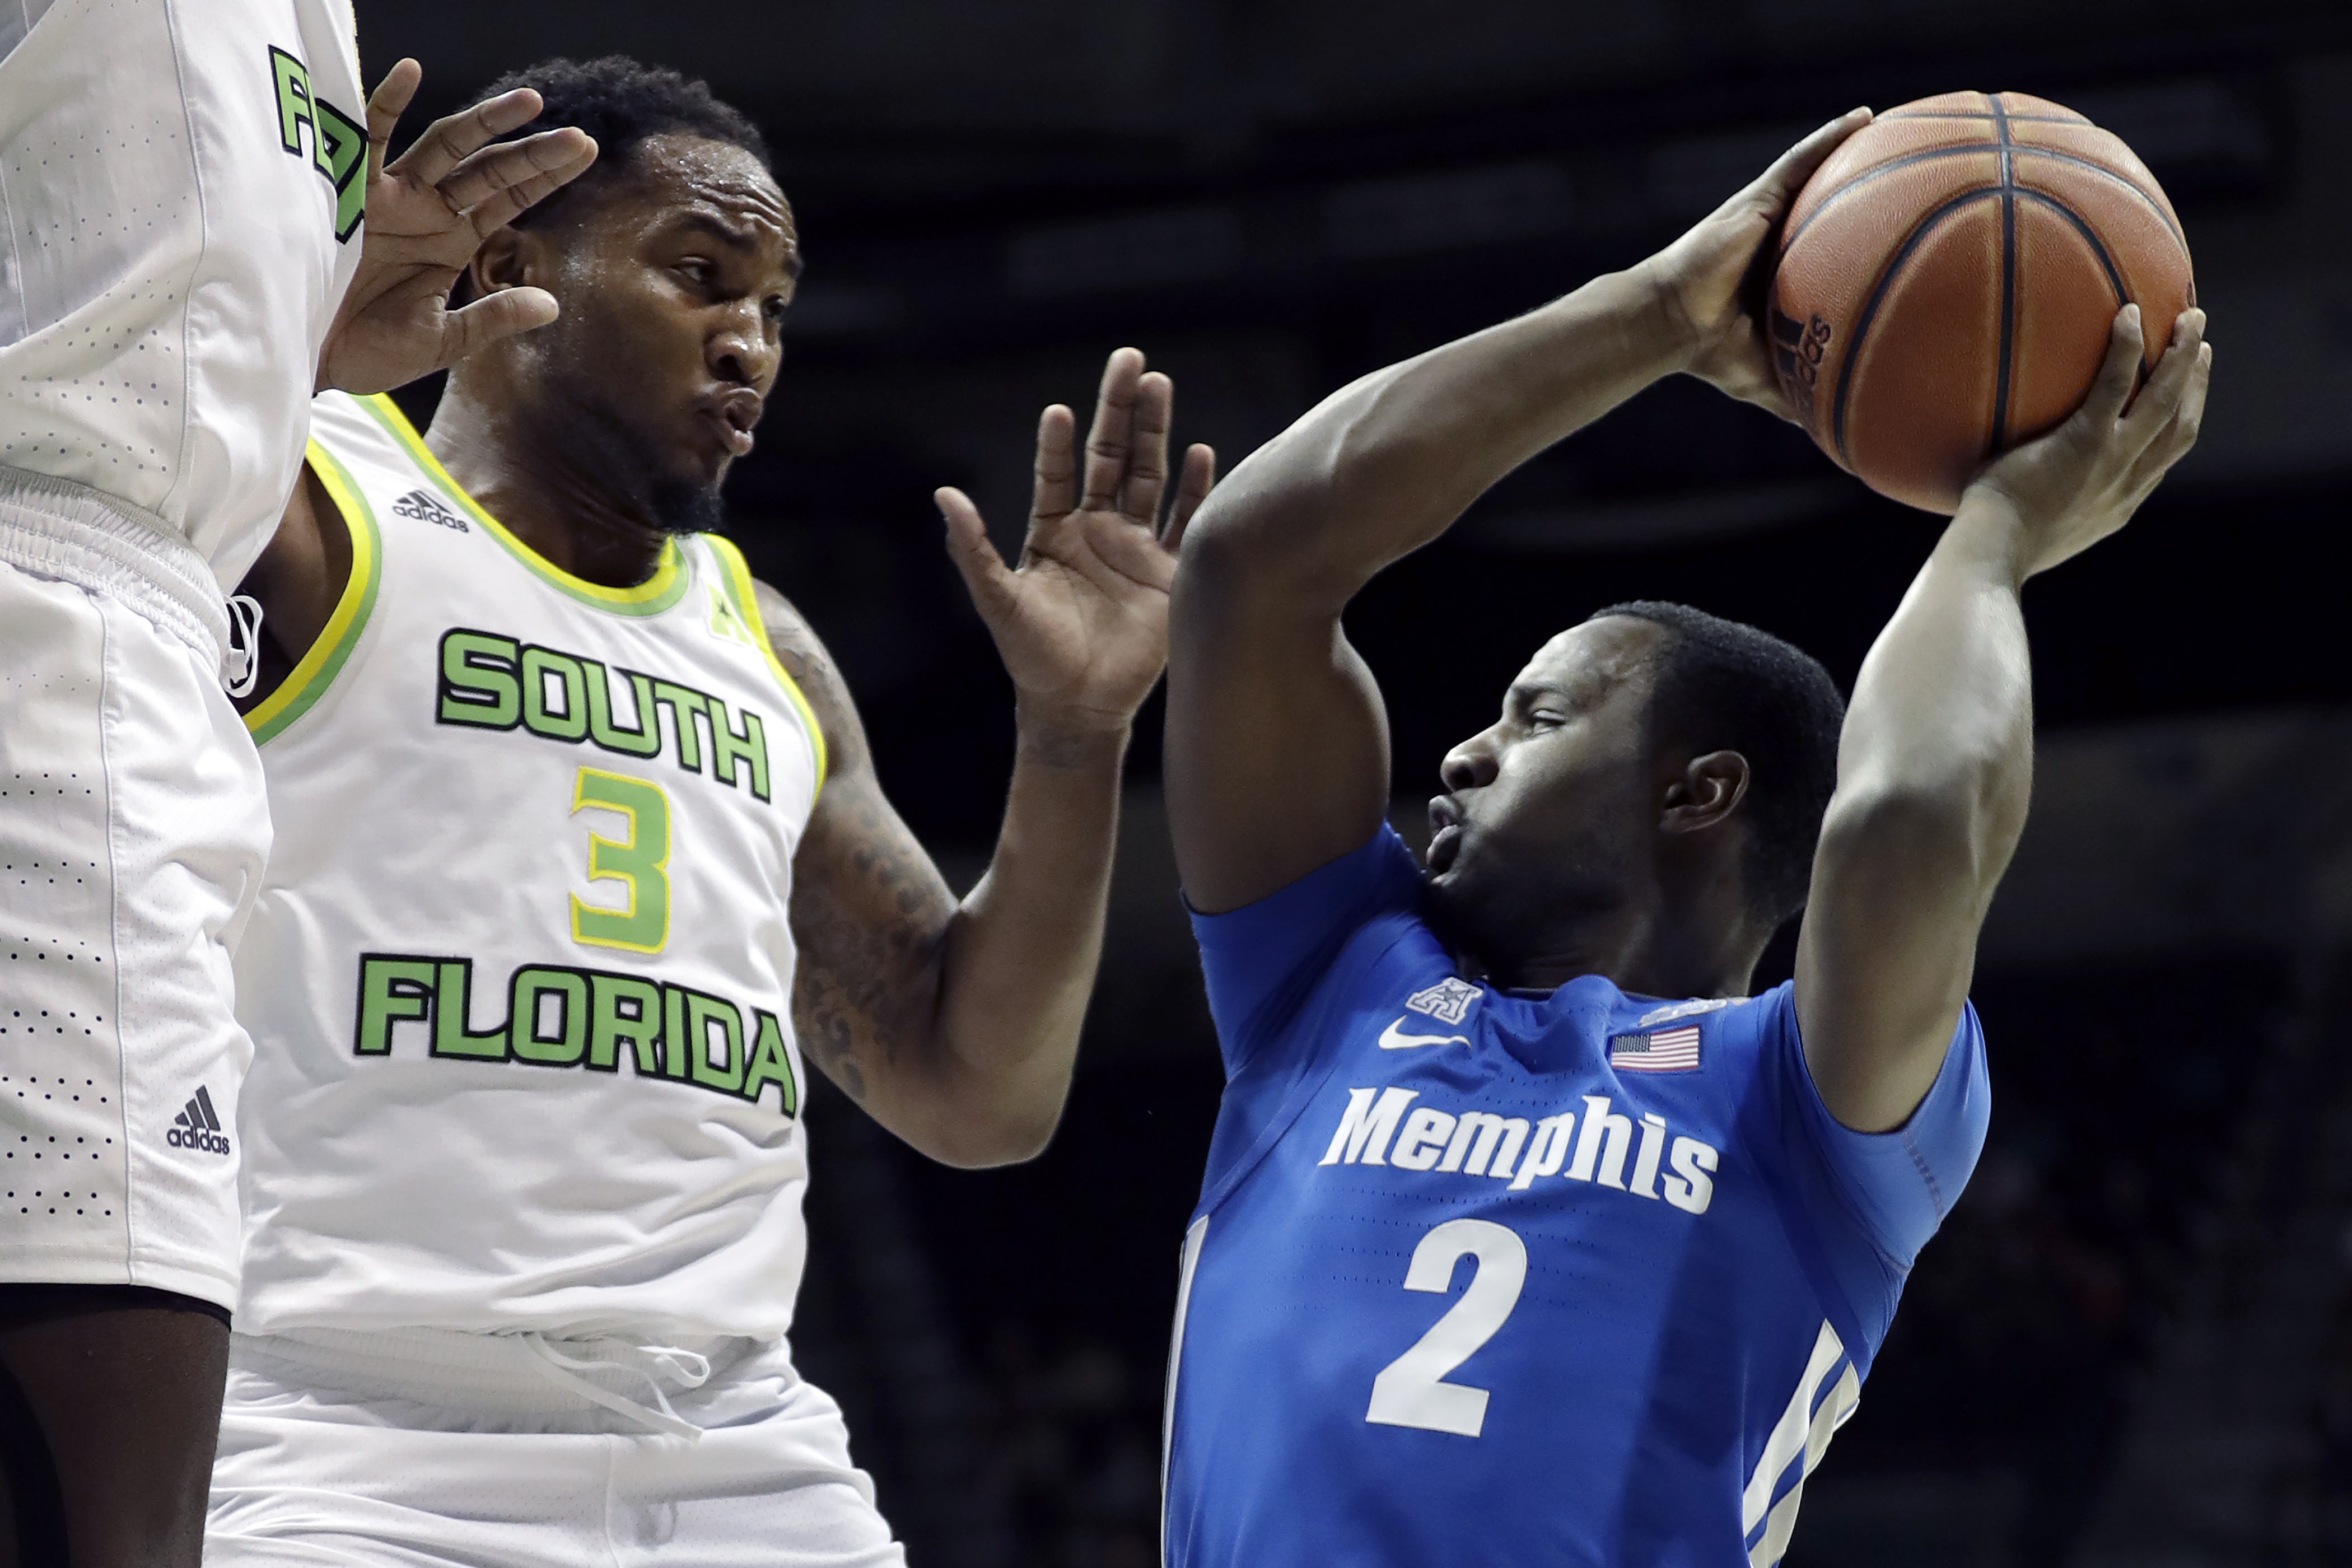 South Florida Had A 14 Point Lead Dissolve In Loss To